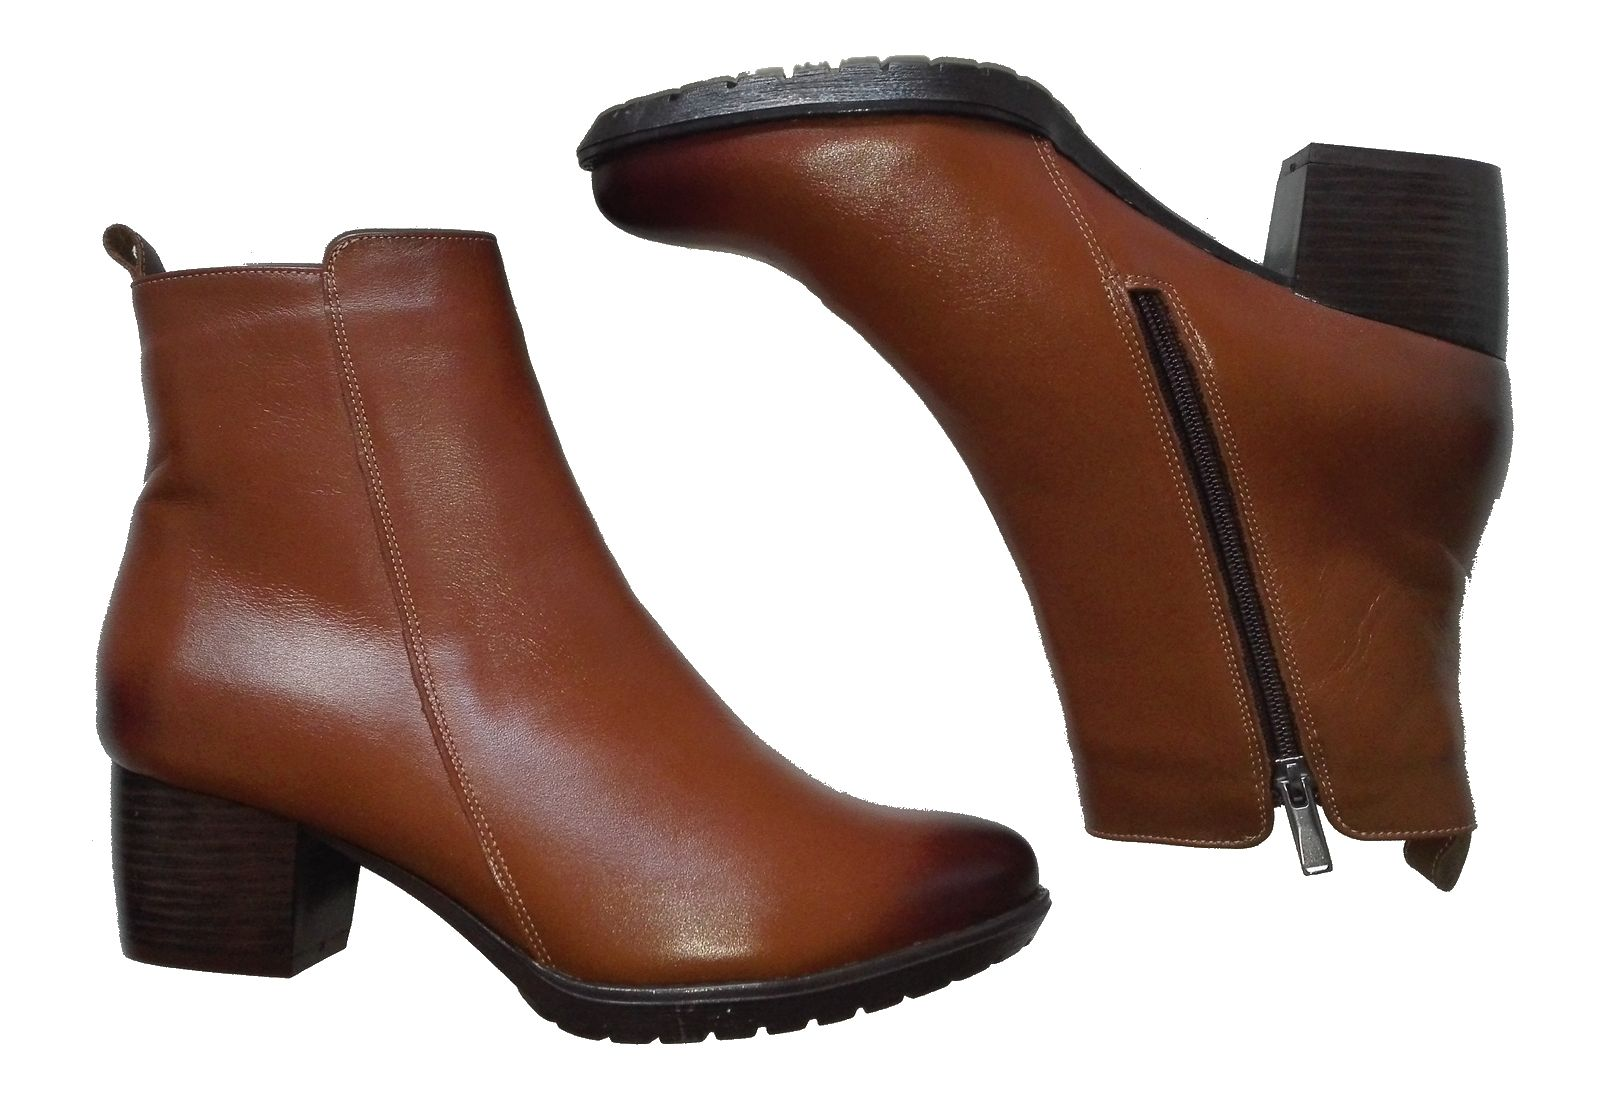 Img 20161212 132119 Jpg Boots Shoes Ankle Boot